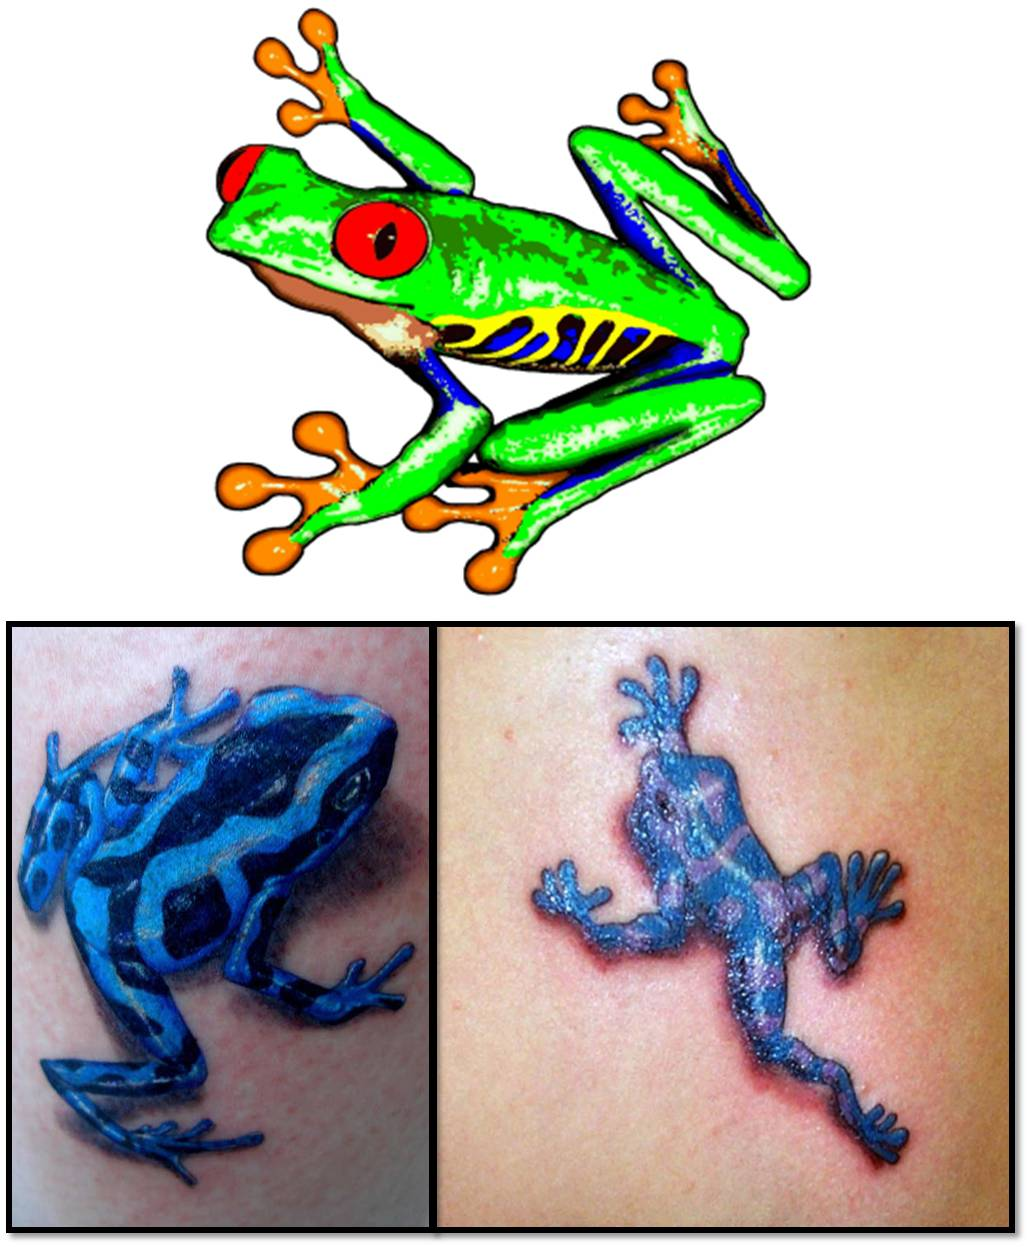 Frog Tattoos Pictures - ClipArt Best